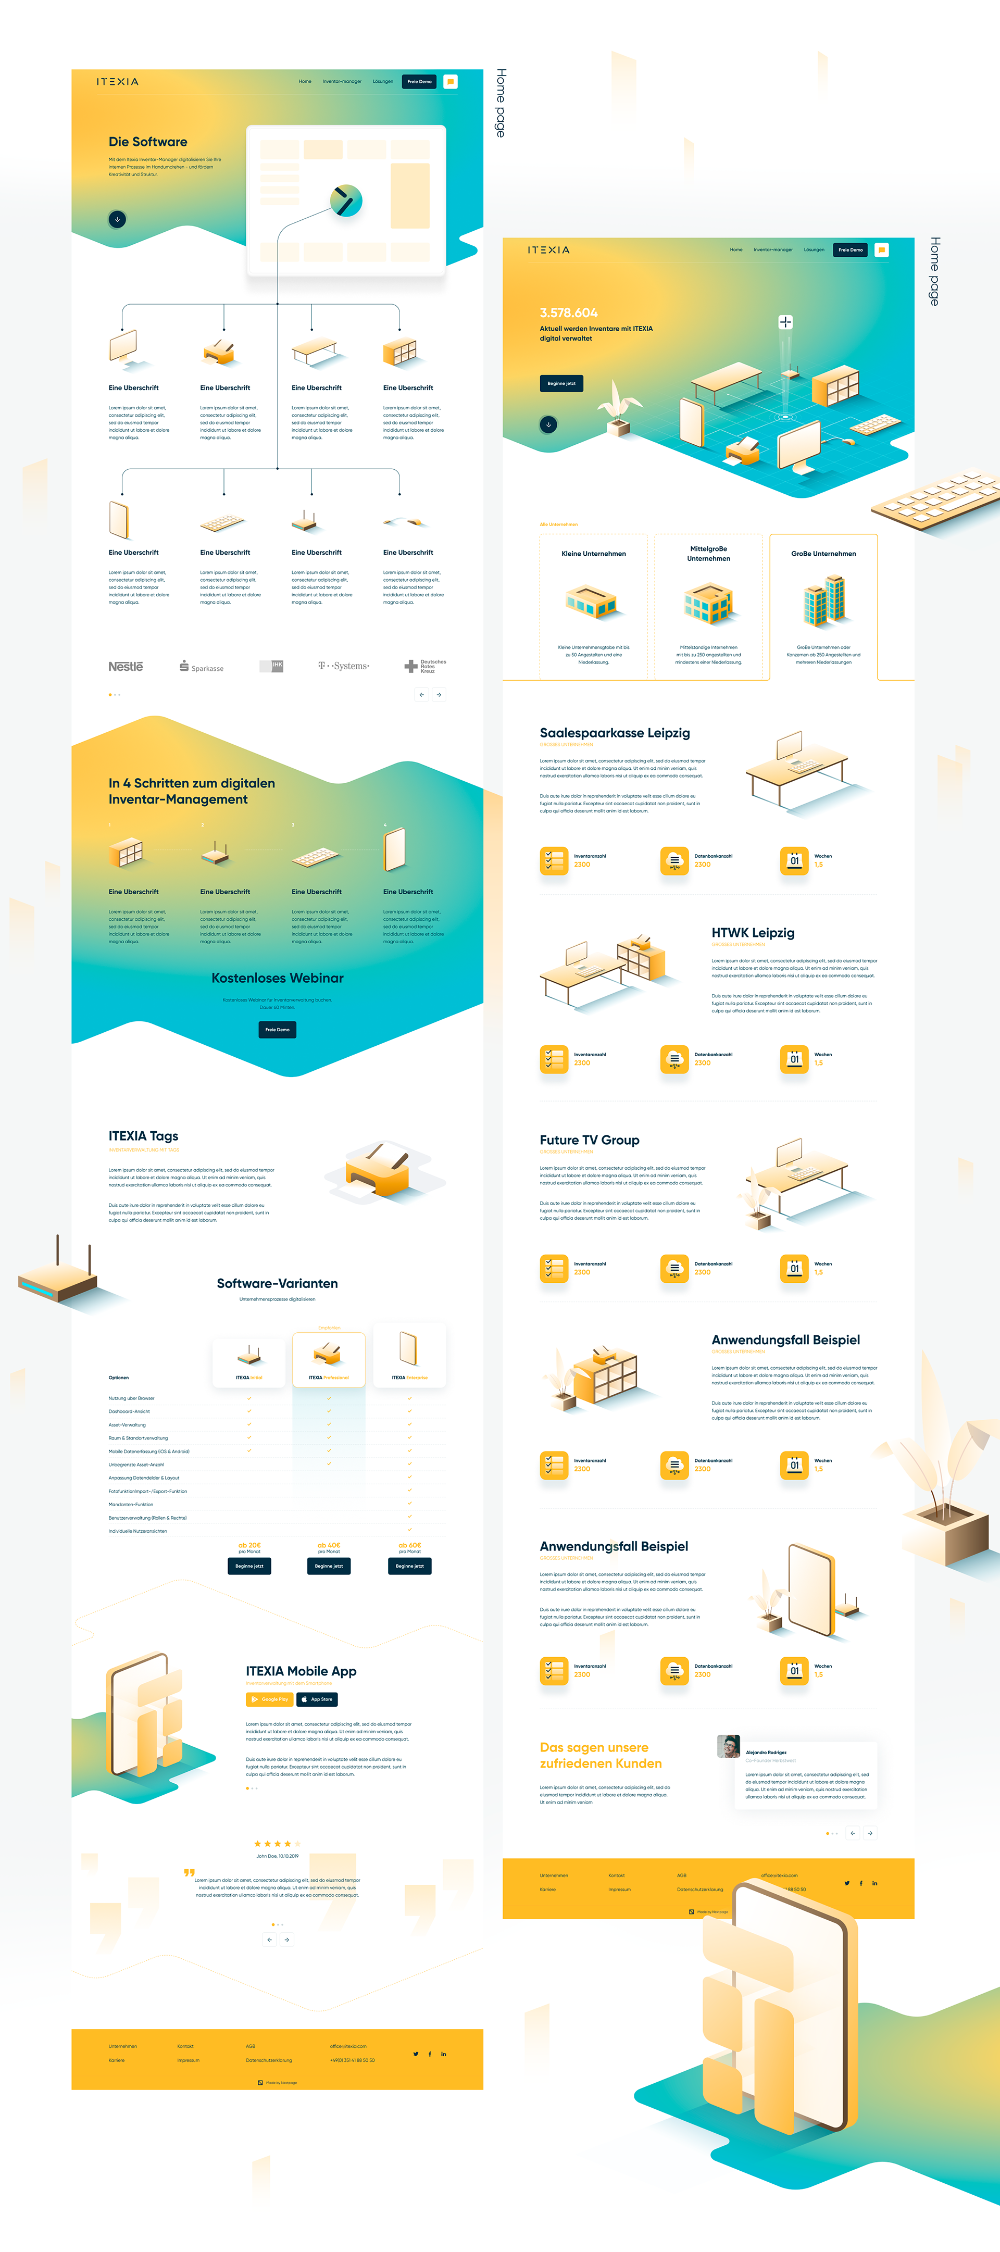 Itexia On Behance In 2020 Consulting Branding Professional Website Design Business Process